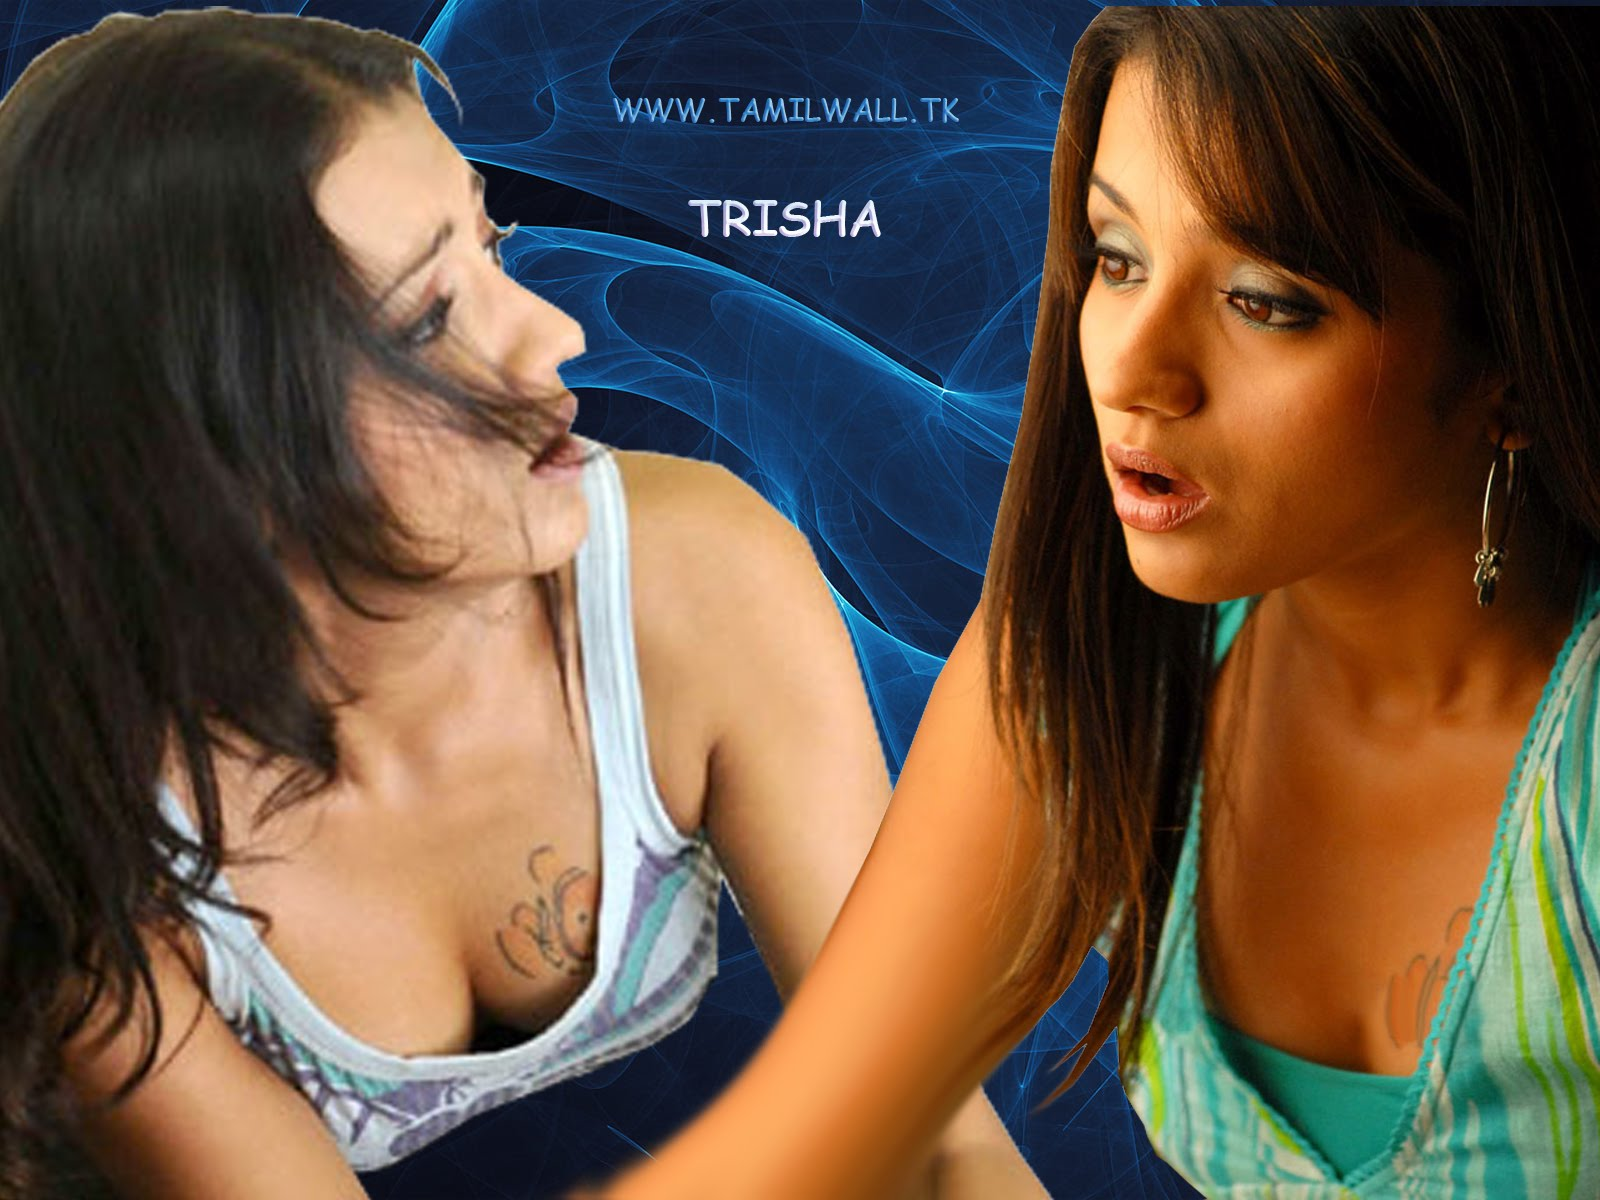 Trisha too sexy and nude. trisha nude wallpaper.